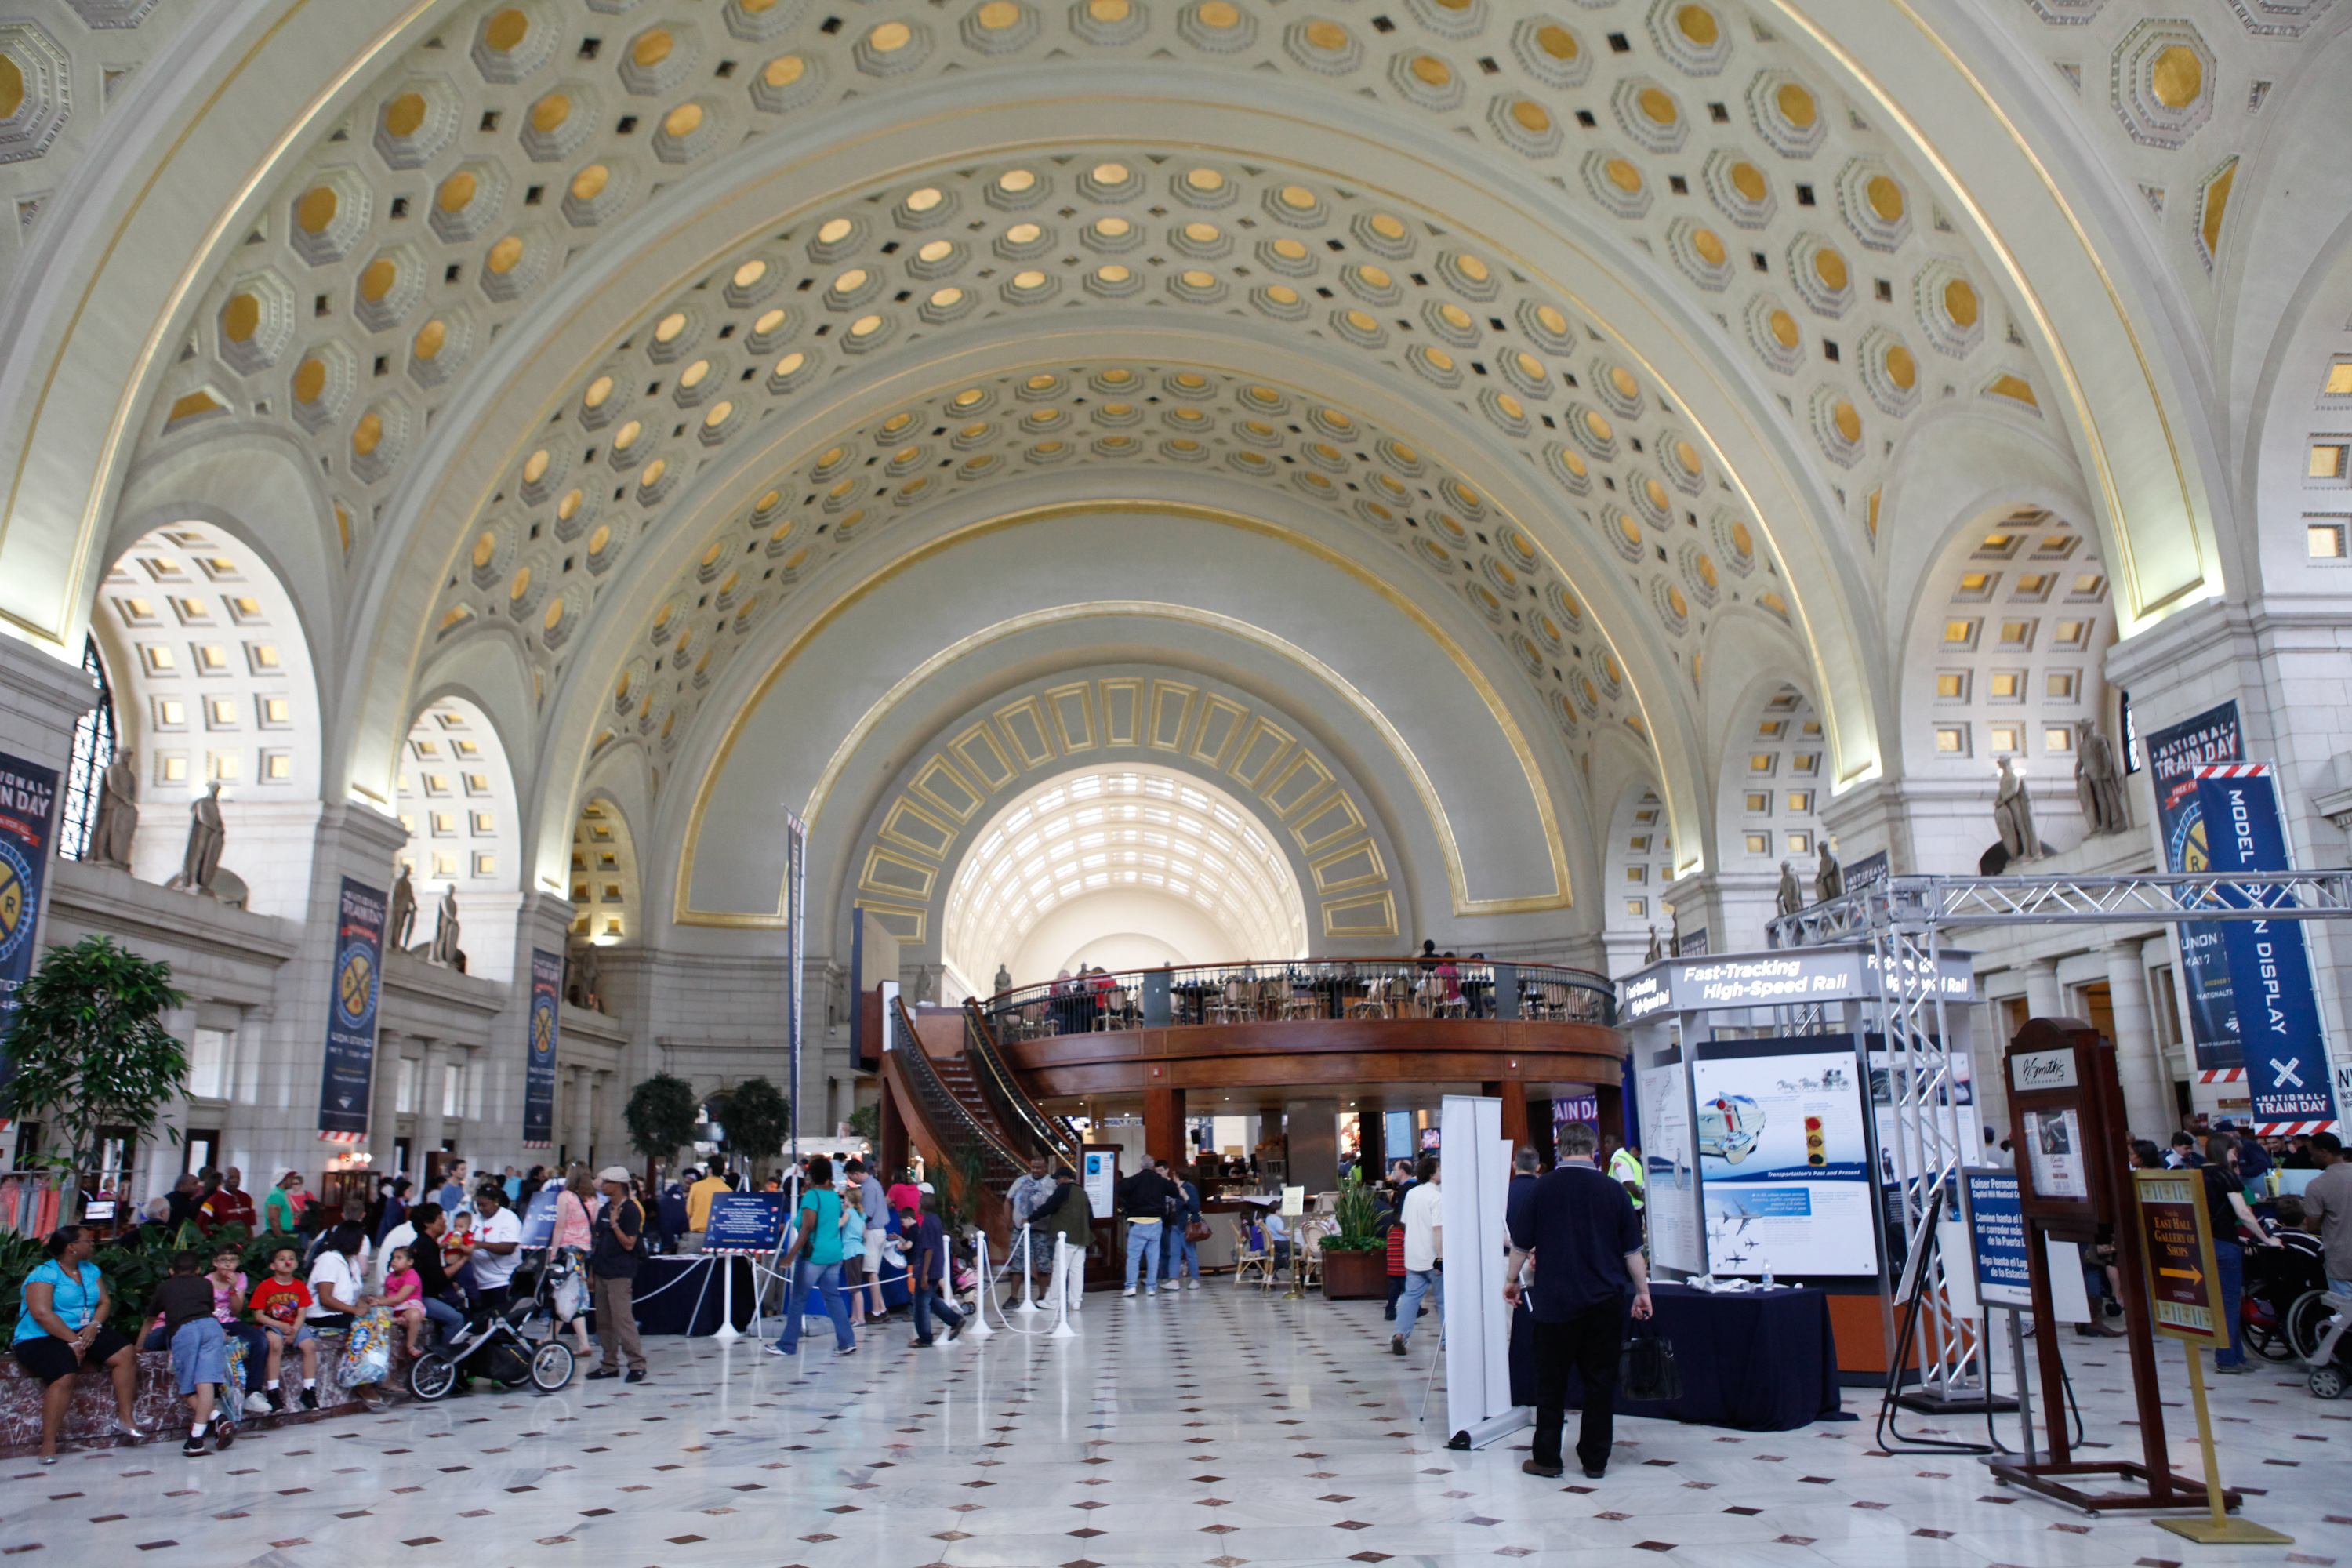 D.C.'s Union Station among most beautiful in the world